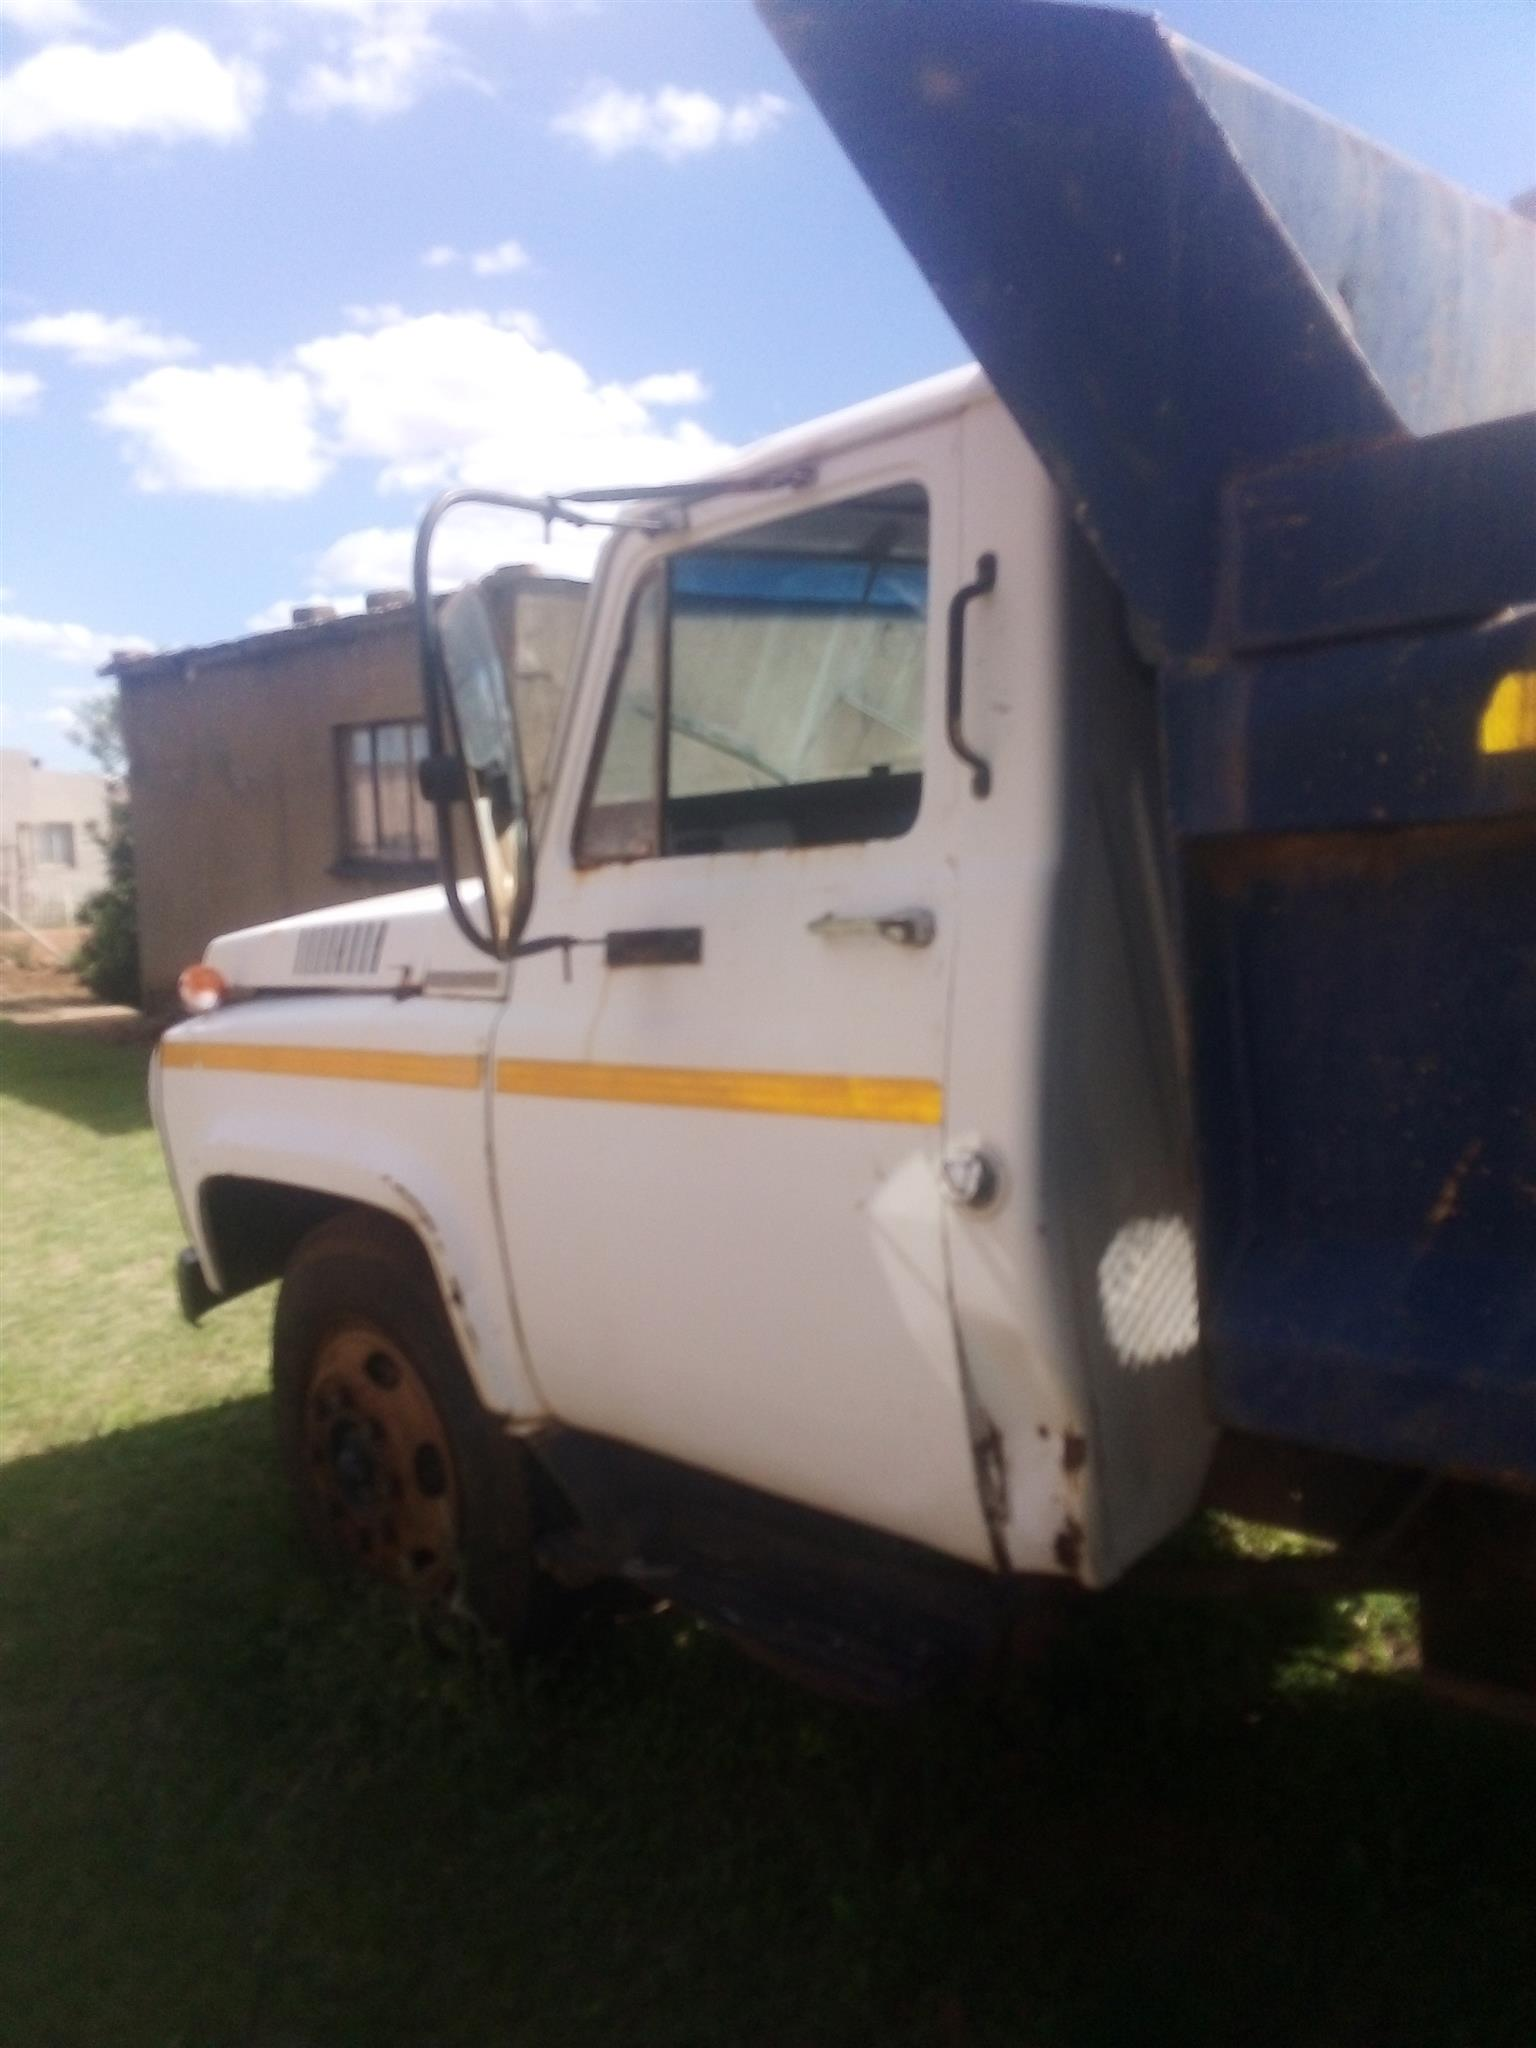 Unit for sale make an offer